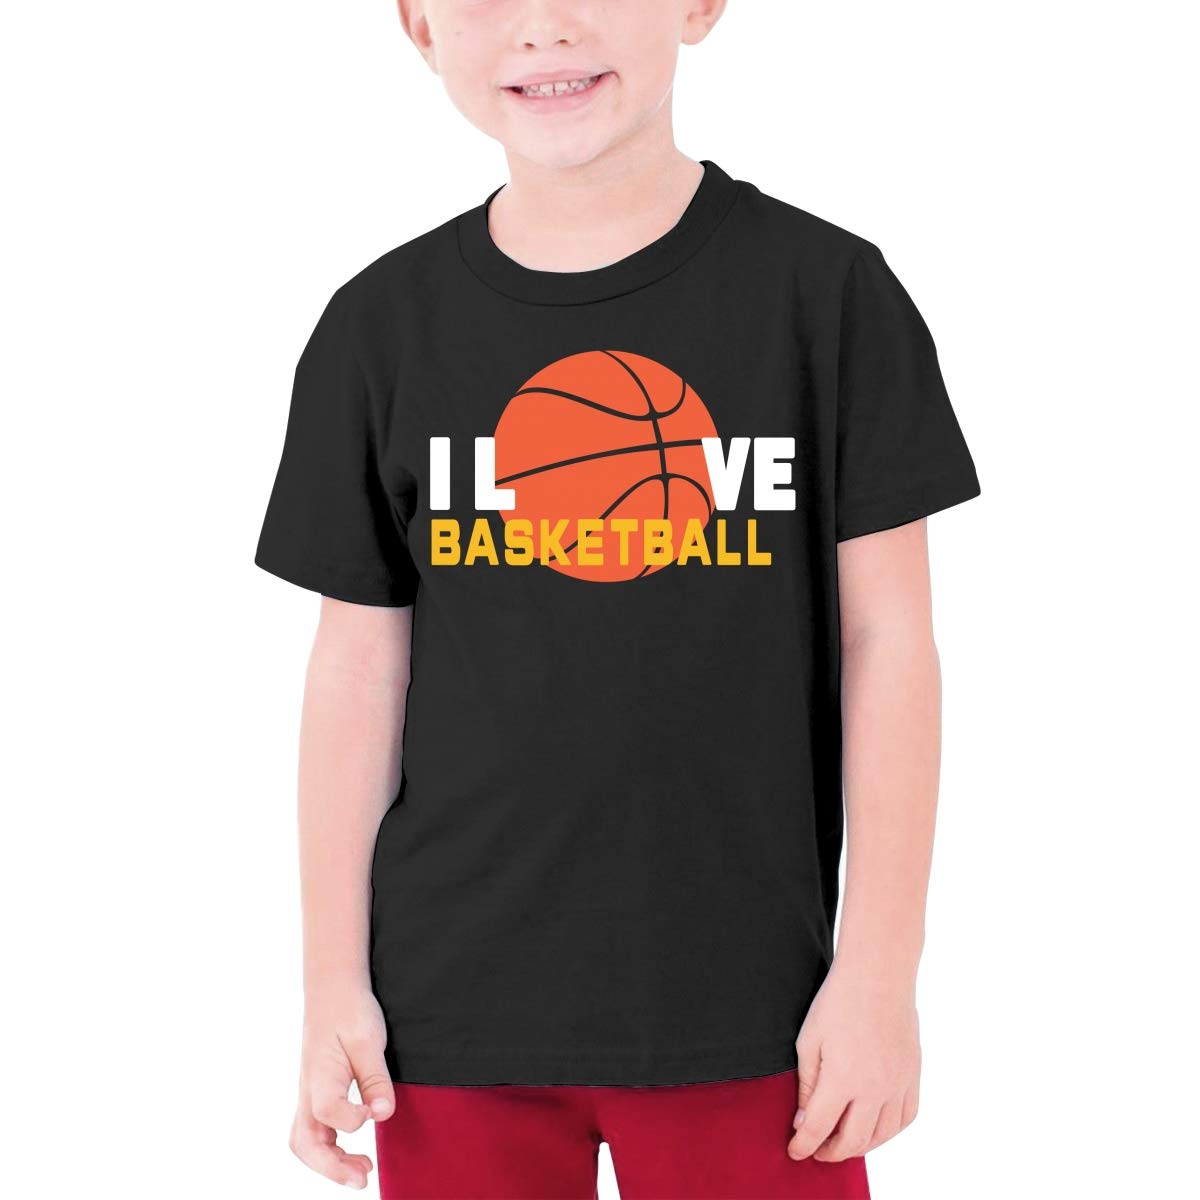 Youth Graphic Tshirts Teenage Boys Girls Short Sleeve T-Shirt I Love Basketball Printed Round Collar T Shirt Tees Tops